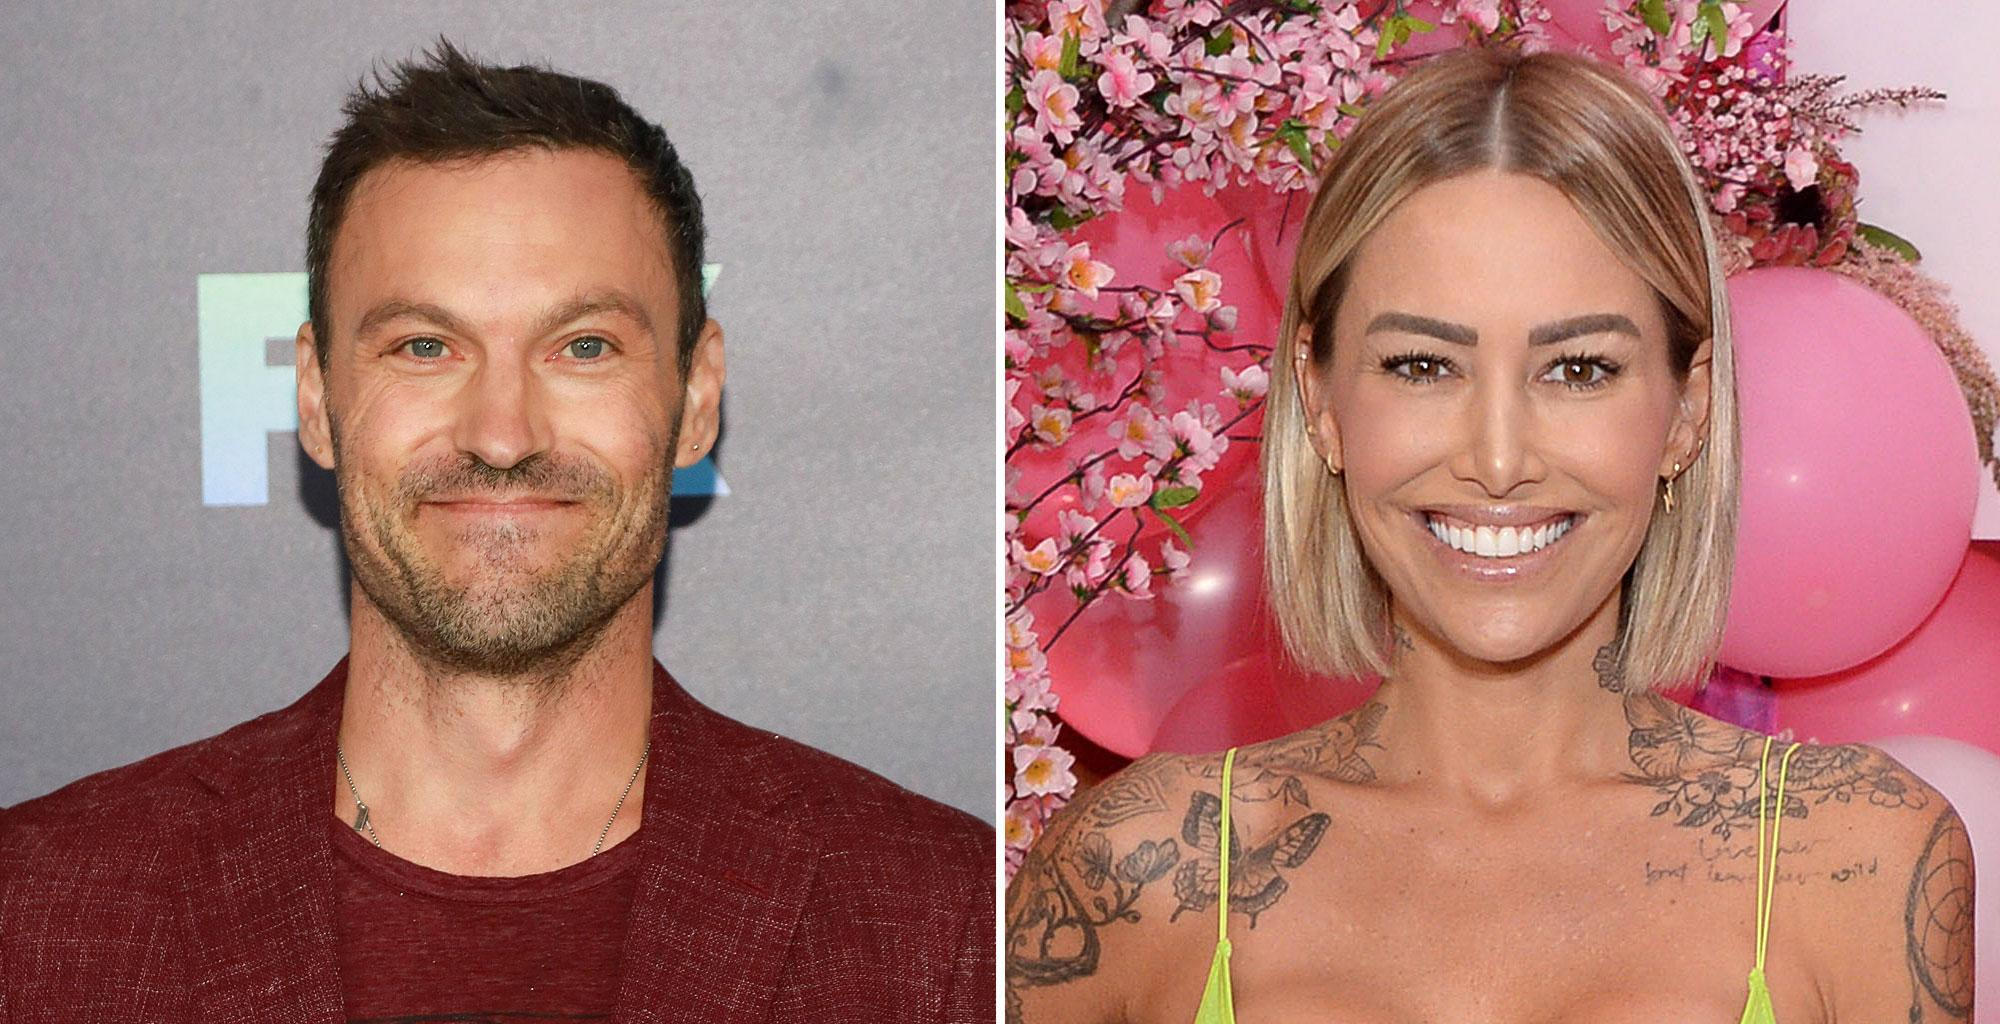 Brian Austin Green And Tina Louise Reunite A Week After Break Up Reports - Here's Why They're Still Together!